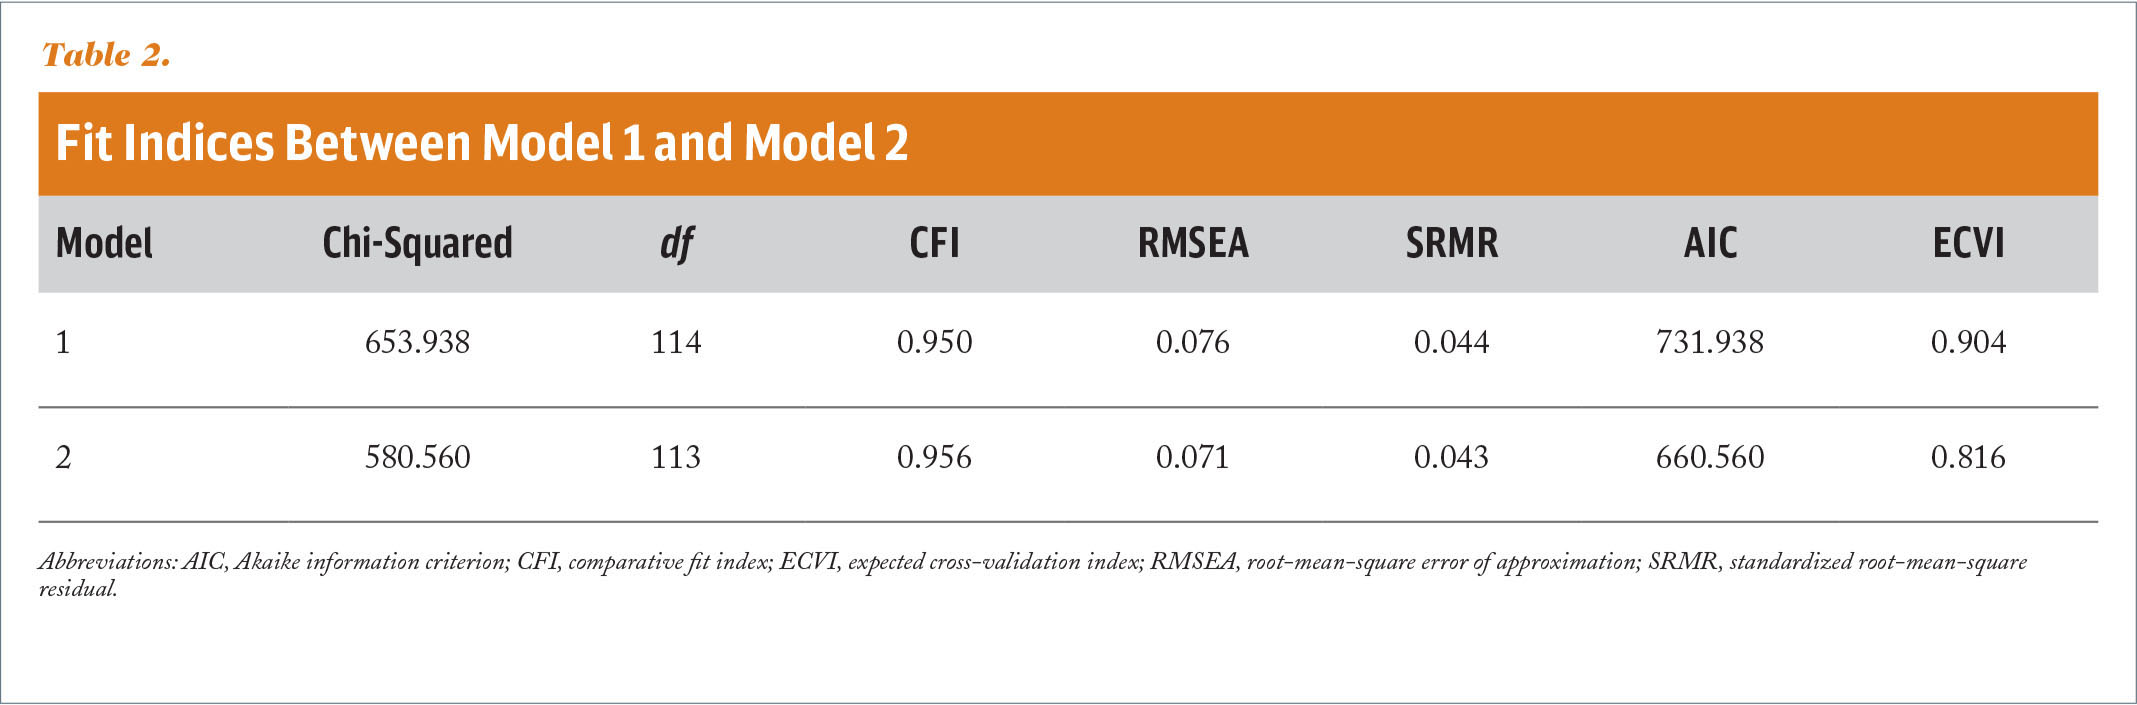 Fit Indices Between Model 1 and Model 2